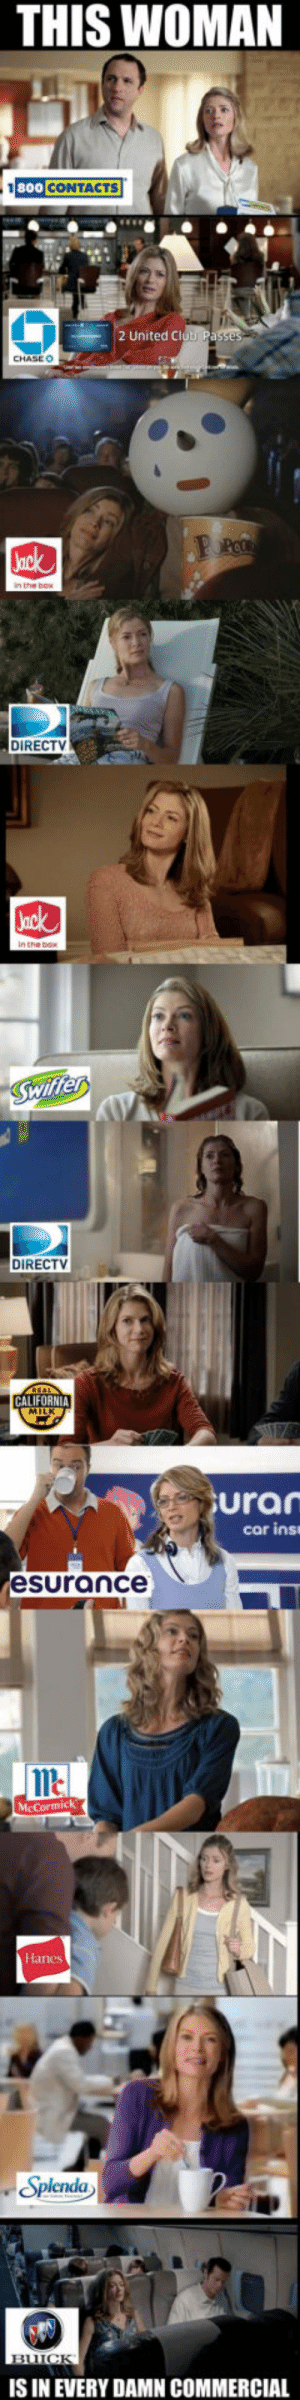 srsfunny:  She's Like The Nicolas Cage Of Commercialshttp://srsfunny.tumblr.com/: THIS WOMAN  1800 CONTACTS  Passes  2 United Cl  CHASE O  Peo  Jack  DIRECTV  Jack  Swiffer  DIRECTV  CALIFORNIA  MILK  uran  car ins  esurance  McCormick  Hanes  Splenda  BUICK  IS IN EVERY DAMN COMMERCIAL srsfunny:  She's Like The Nicolas Cage Of Commercialshttp://srsfunny.tumblr.com/